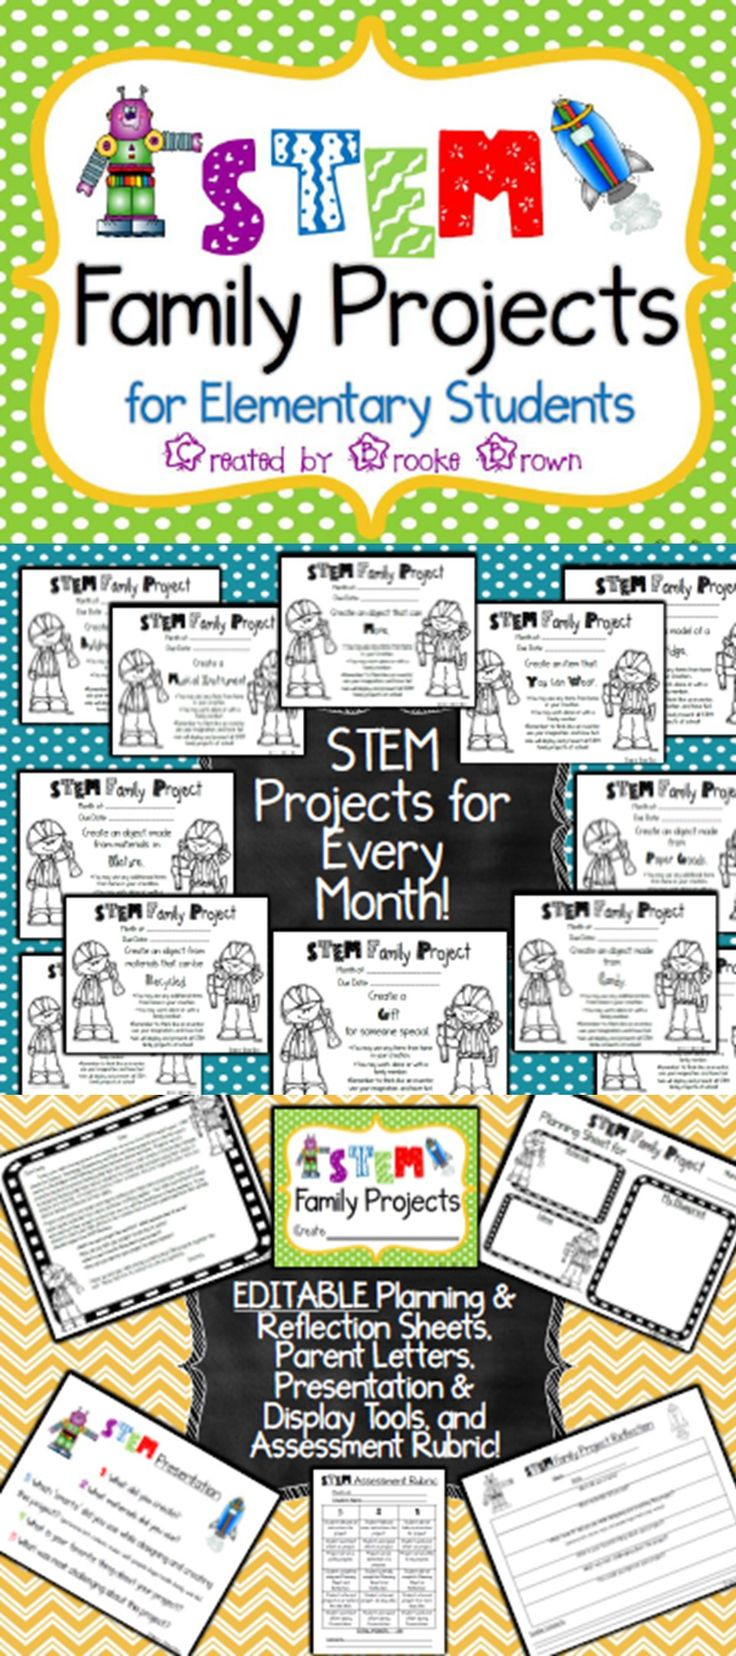 Brand new STEM Family Projects for elementary students! Monthly instructions, planning and reflection sheets, assessment and presentation tools and MORE!